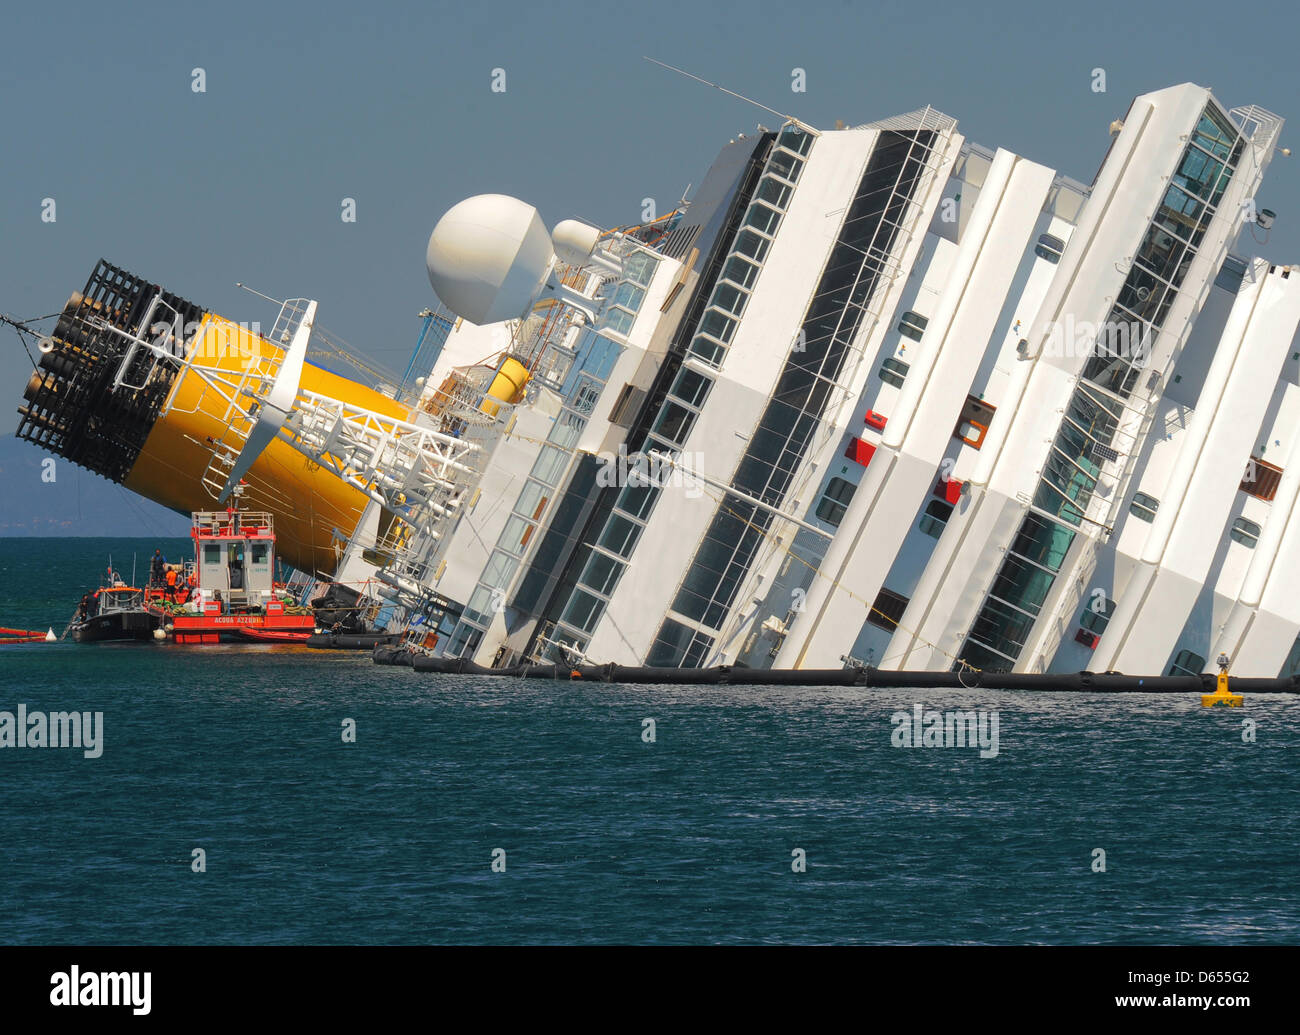 The Capsized Costa Concordia Cruise Ship Lies Off The Port Of - Sunken cruise ships